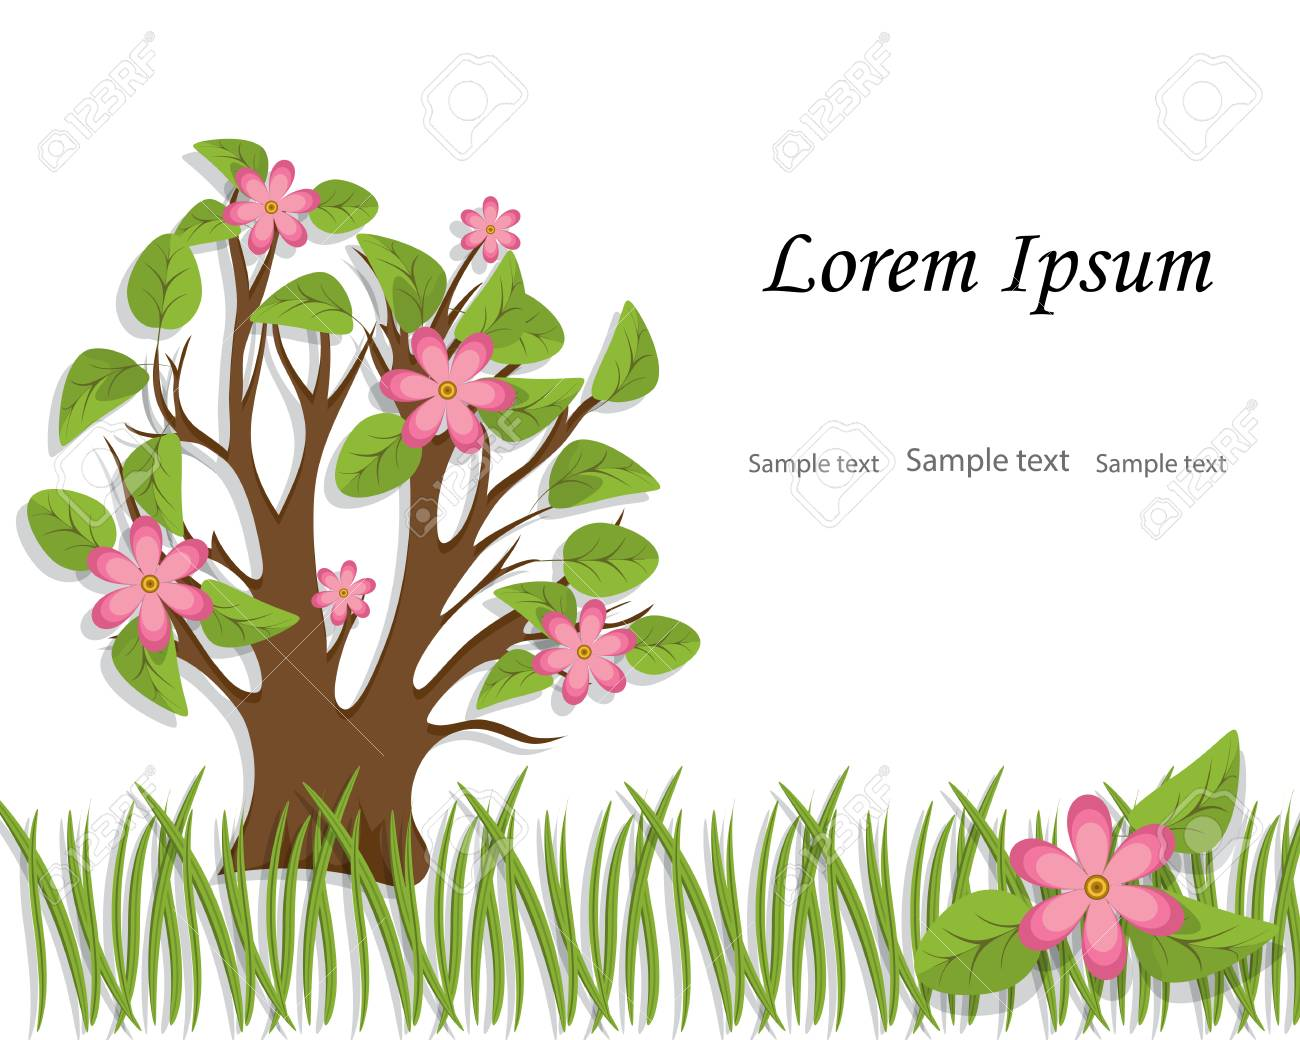 The Tree With Foliage And Pink Flowers Is Cut Out Of Paperspring